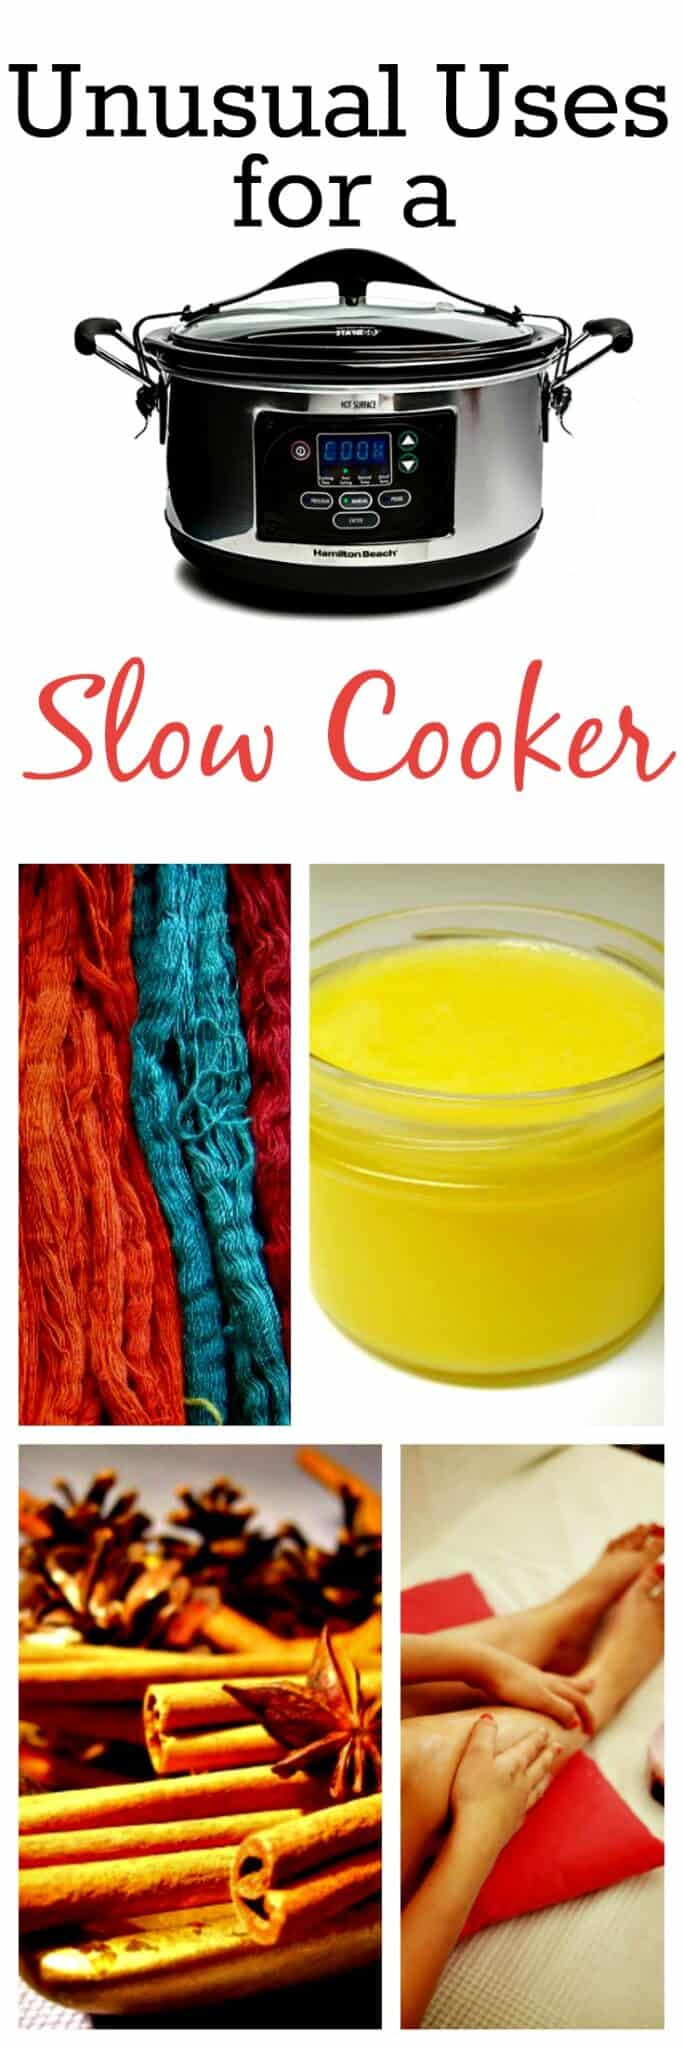 Pin Unusual Uses for a Slow Cooker